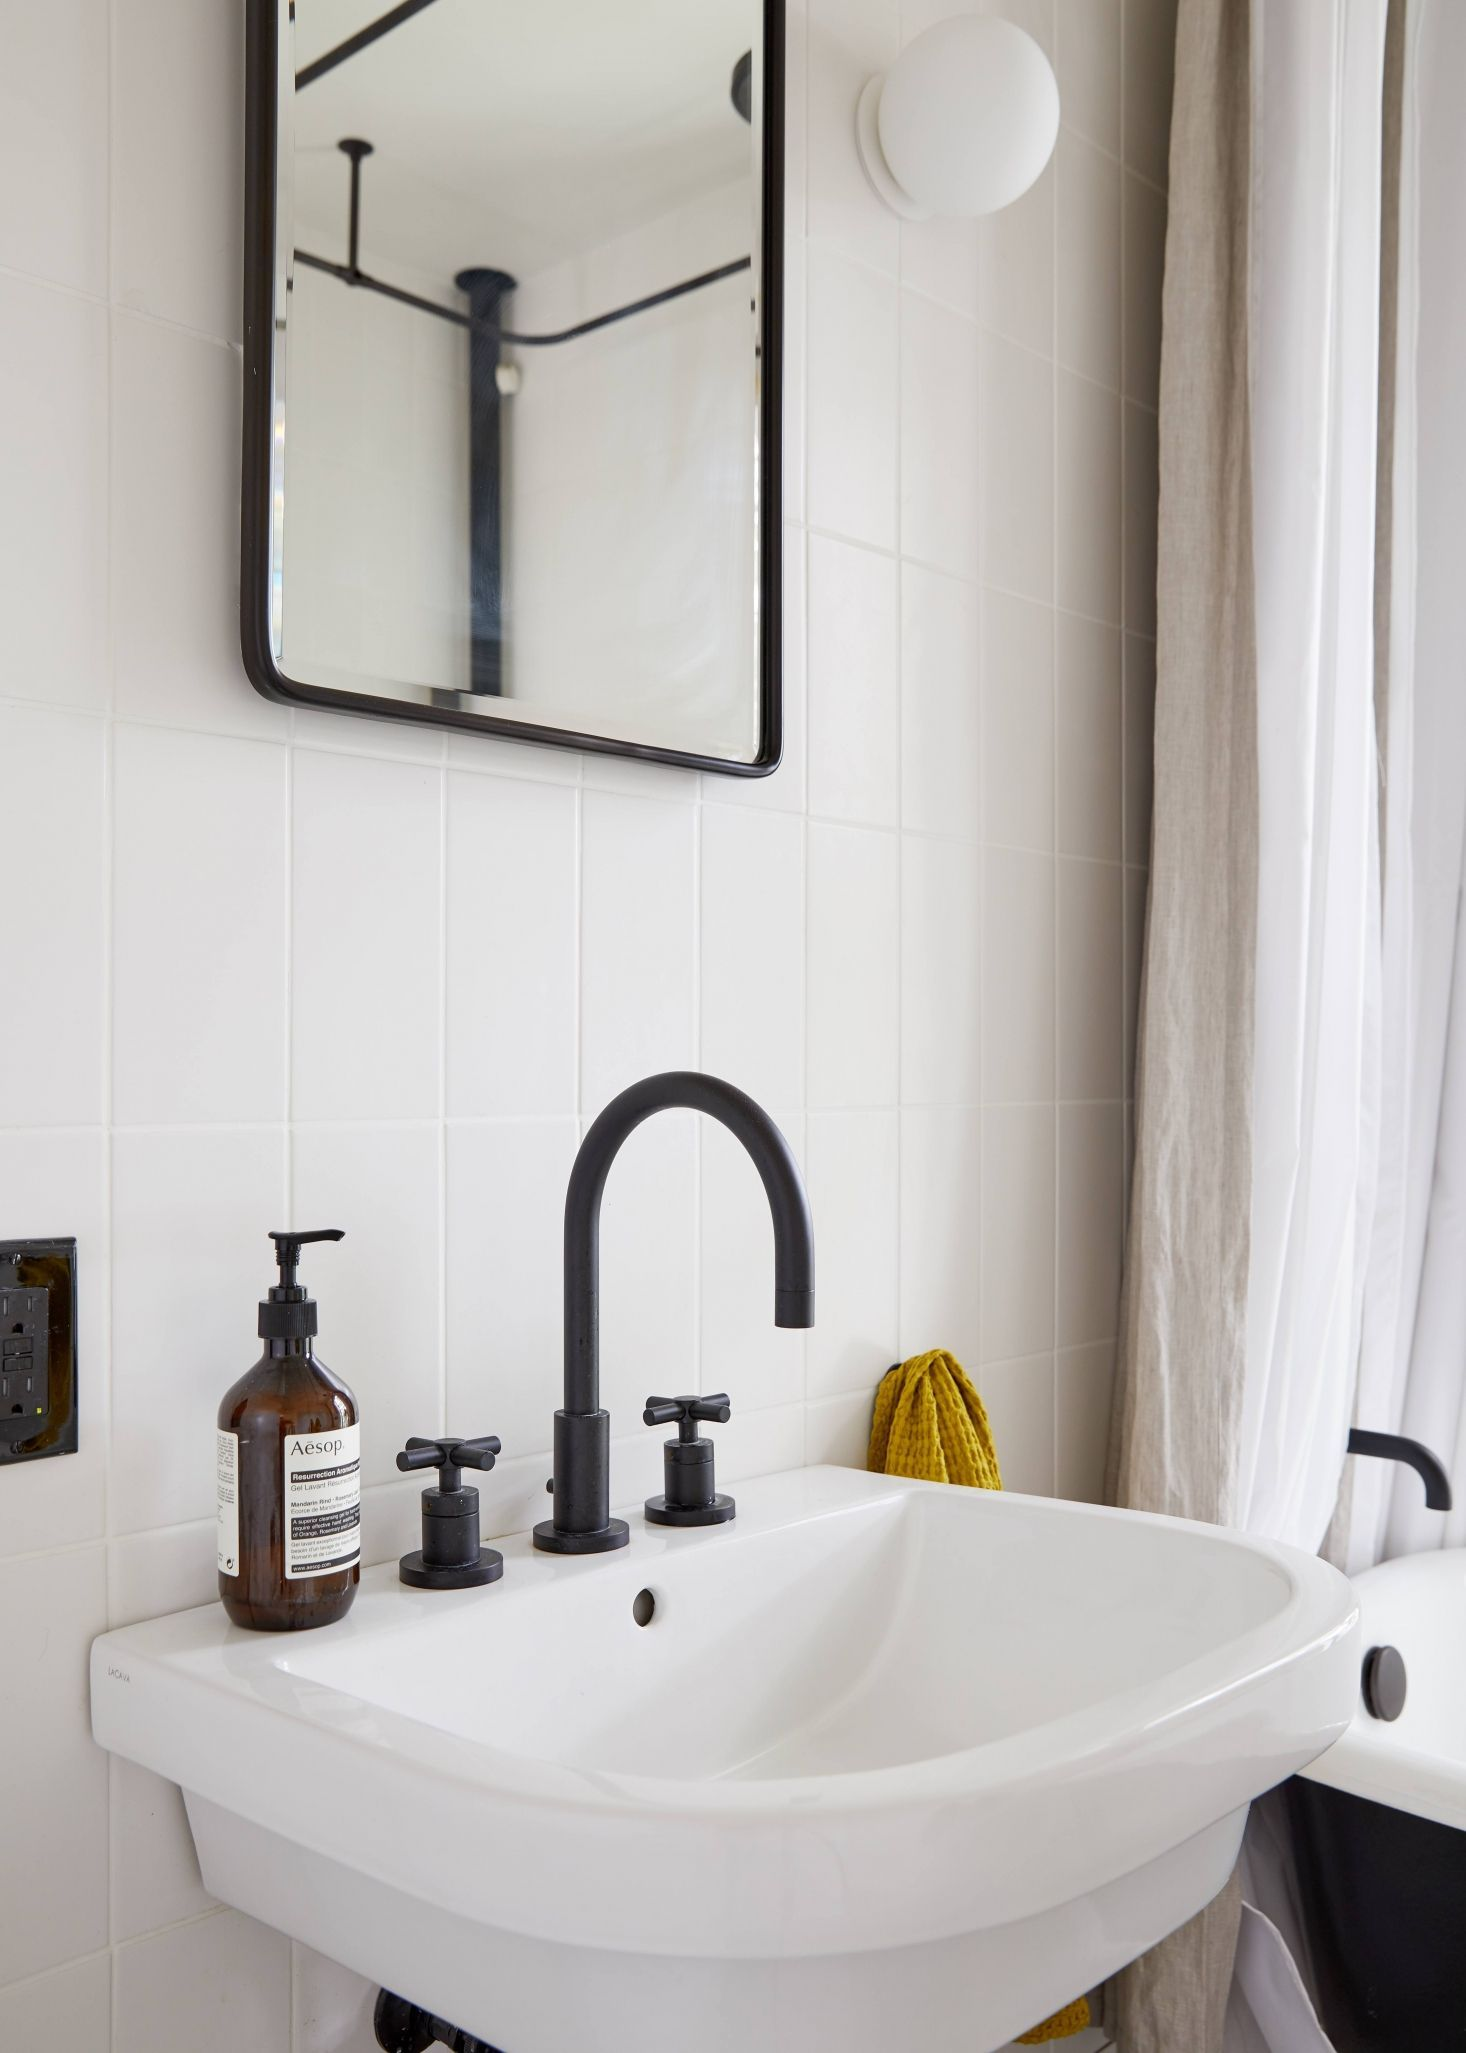 The Modern Pedestal Sink Is The Piazza From Lacava It Looks Very Happy And Has Good Deck Sp Modern Pedestal Sink Pedestal Sink Bathroom Bathroom Construction